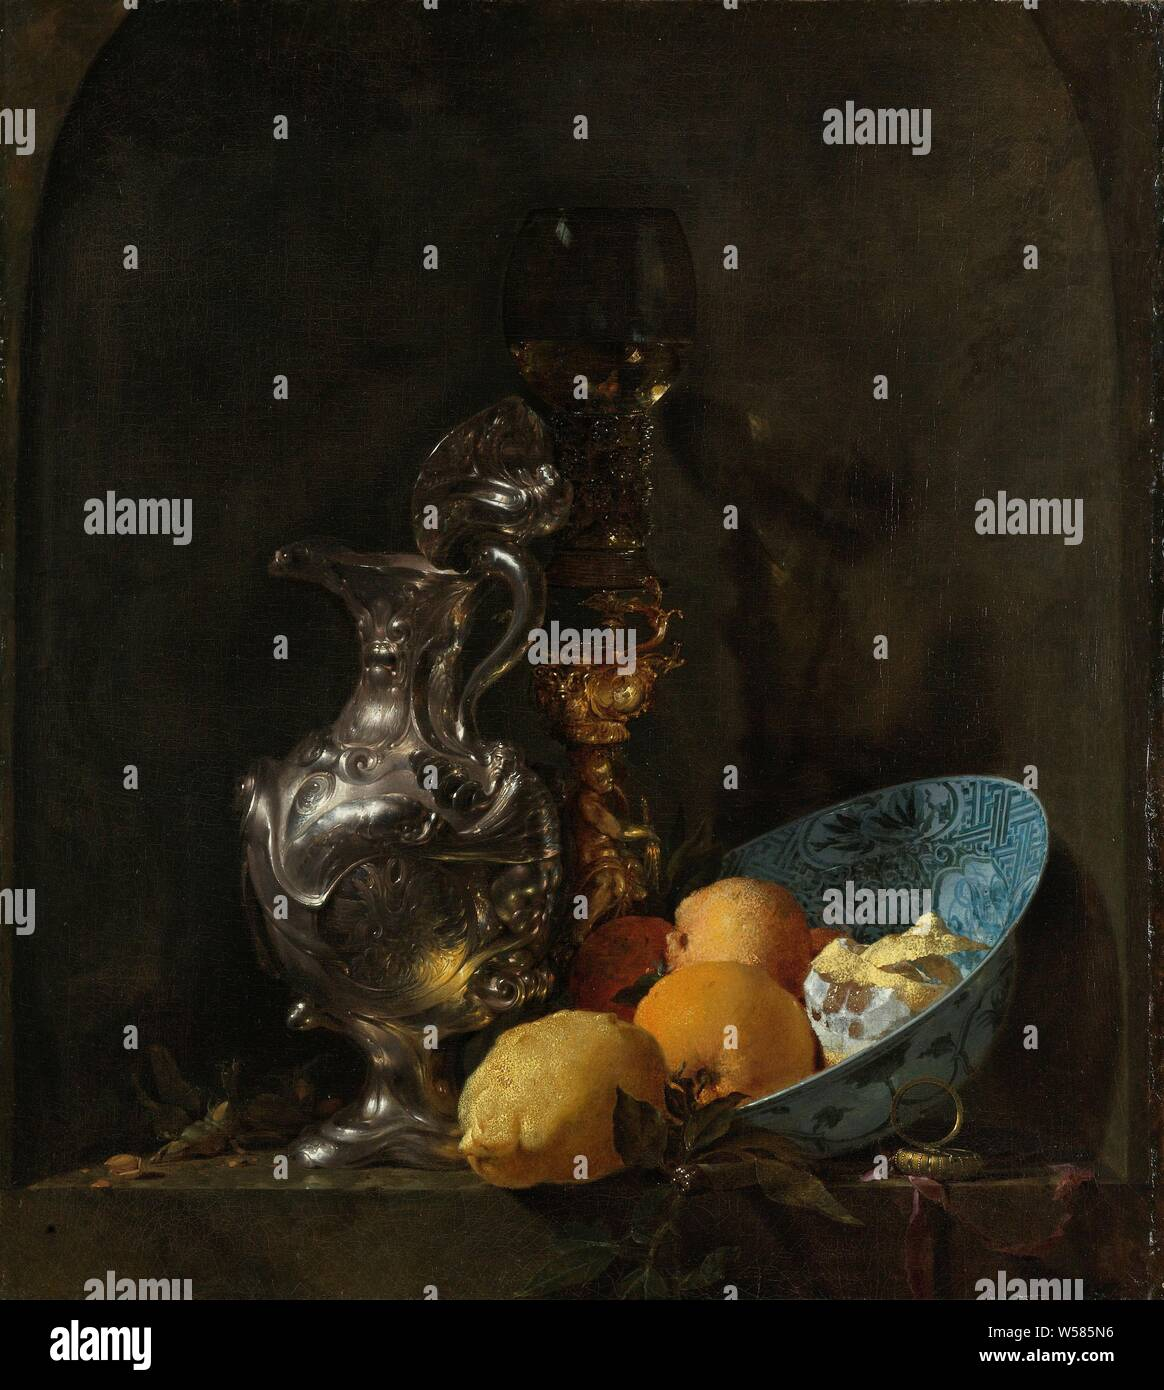 Still Life with a Silver Jug and a Porcelain Bowl Still Life with a Silver Ewer Still Life with a Silver Jug, Still life with an ornamental silver jug with lid, a cup screw with a rummer with white wine, a Wan Li bowl with lemons and oranges and a watch, still life of various objects, container of precious metal, glass of wine, fruits: lemon, watch, Willem Kalf, 1655 - 1660, canvas, oil paint (paint), h 73.8 cm × w 65.2 cm Stock Photo